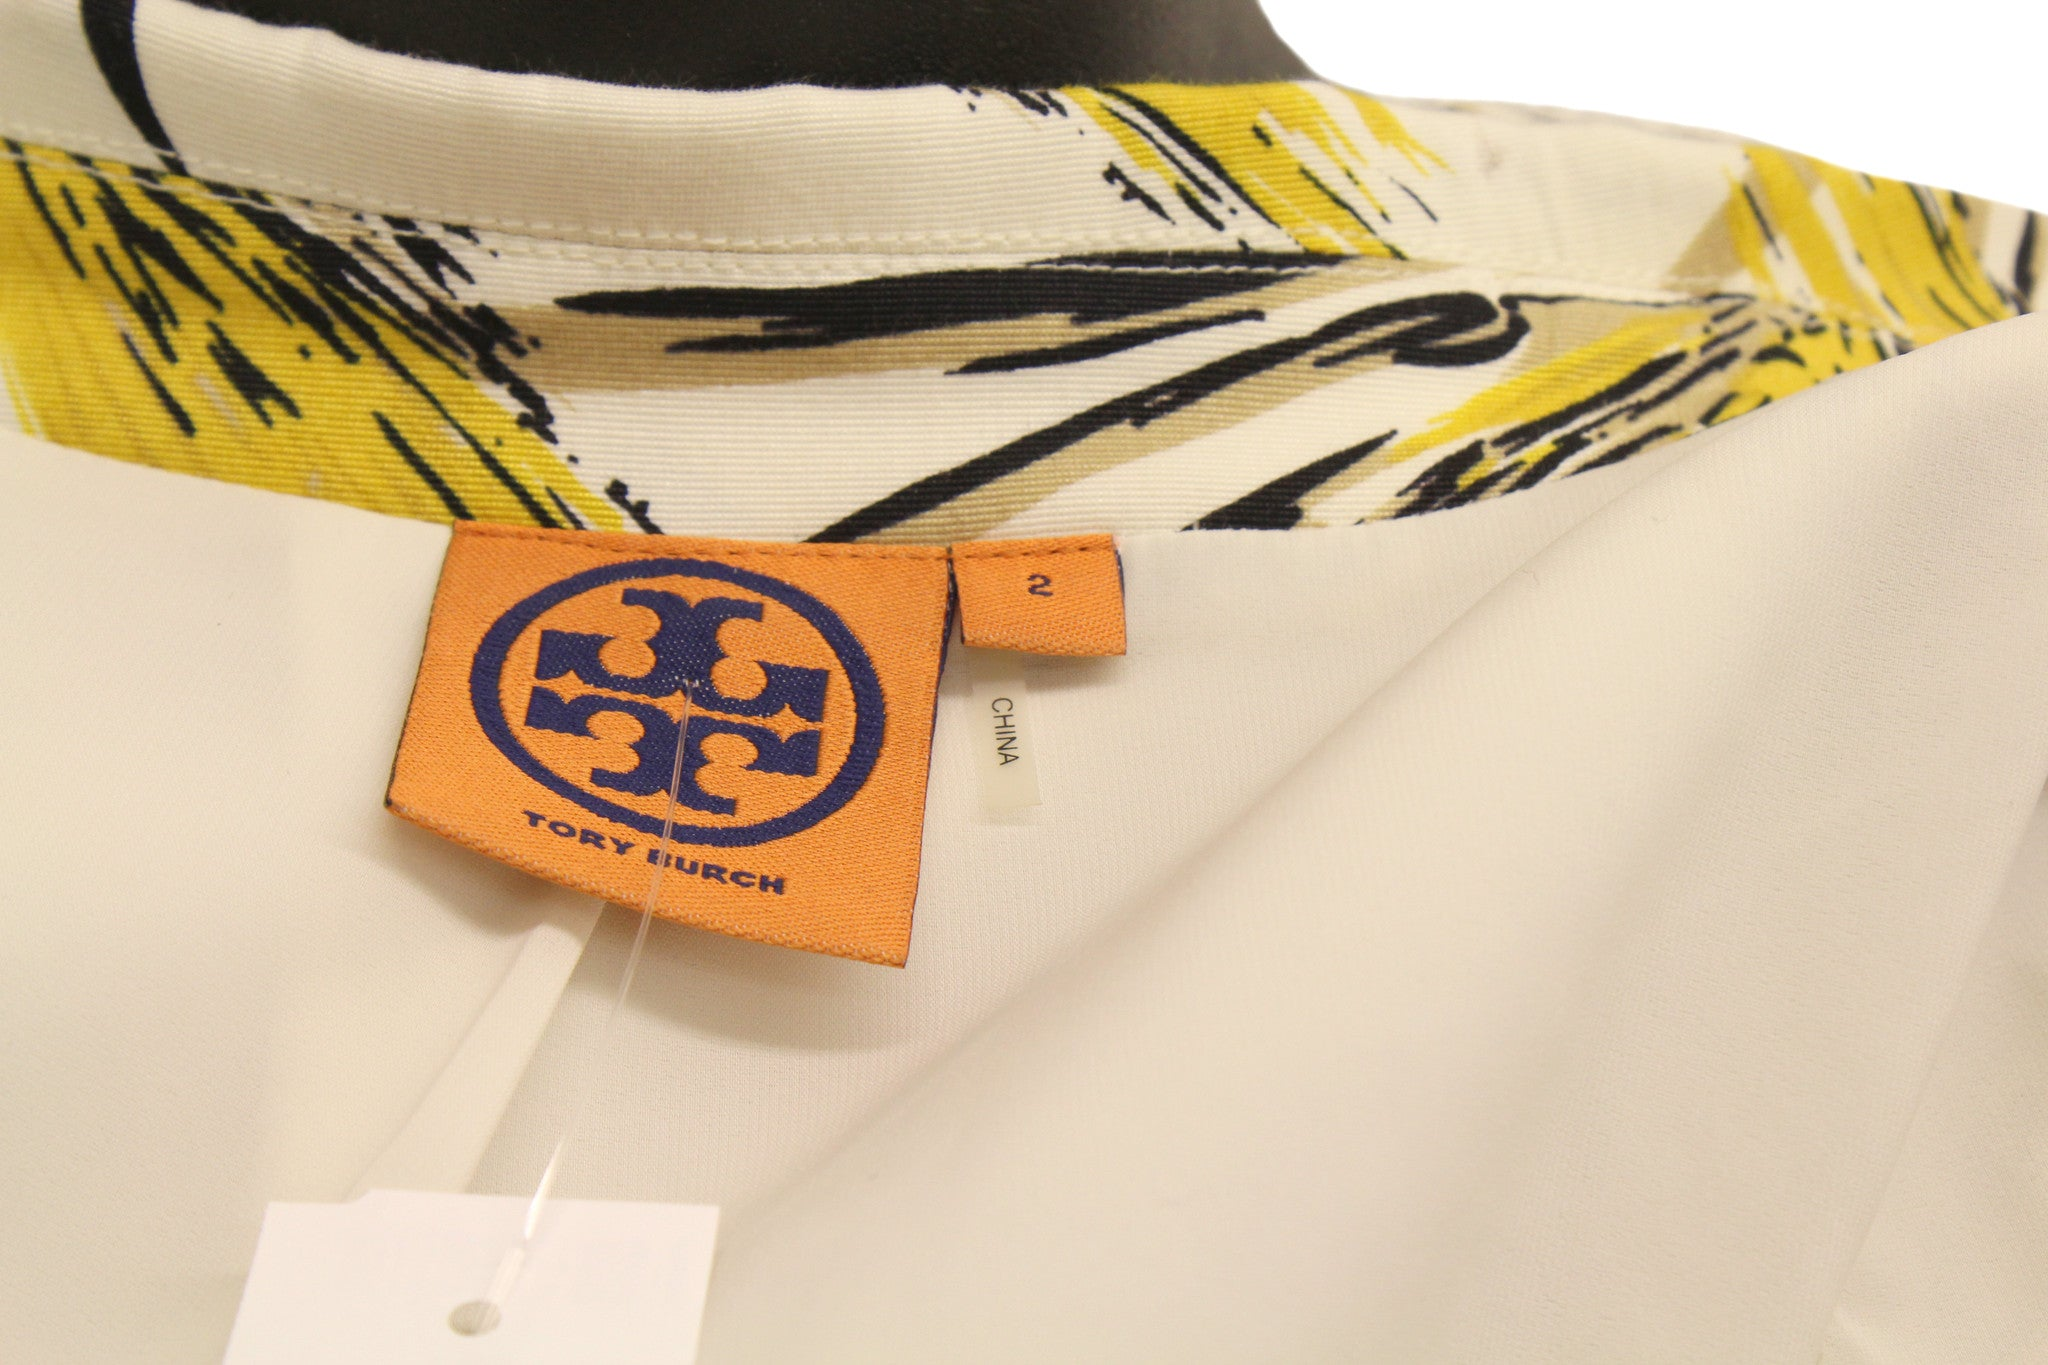 Tory Burch Yellow Wheat 'Rimon' Printed Jacket (Size 2) - Encore Consignment - 5